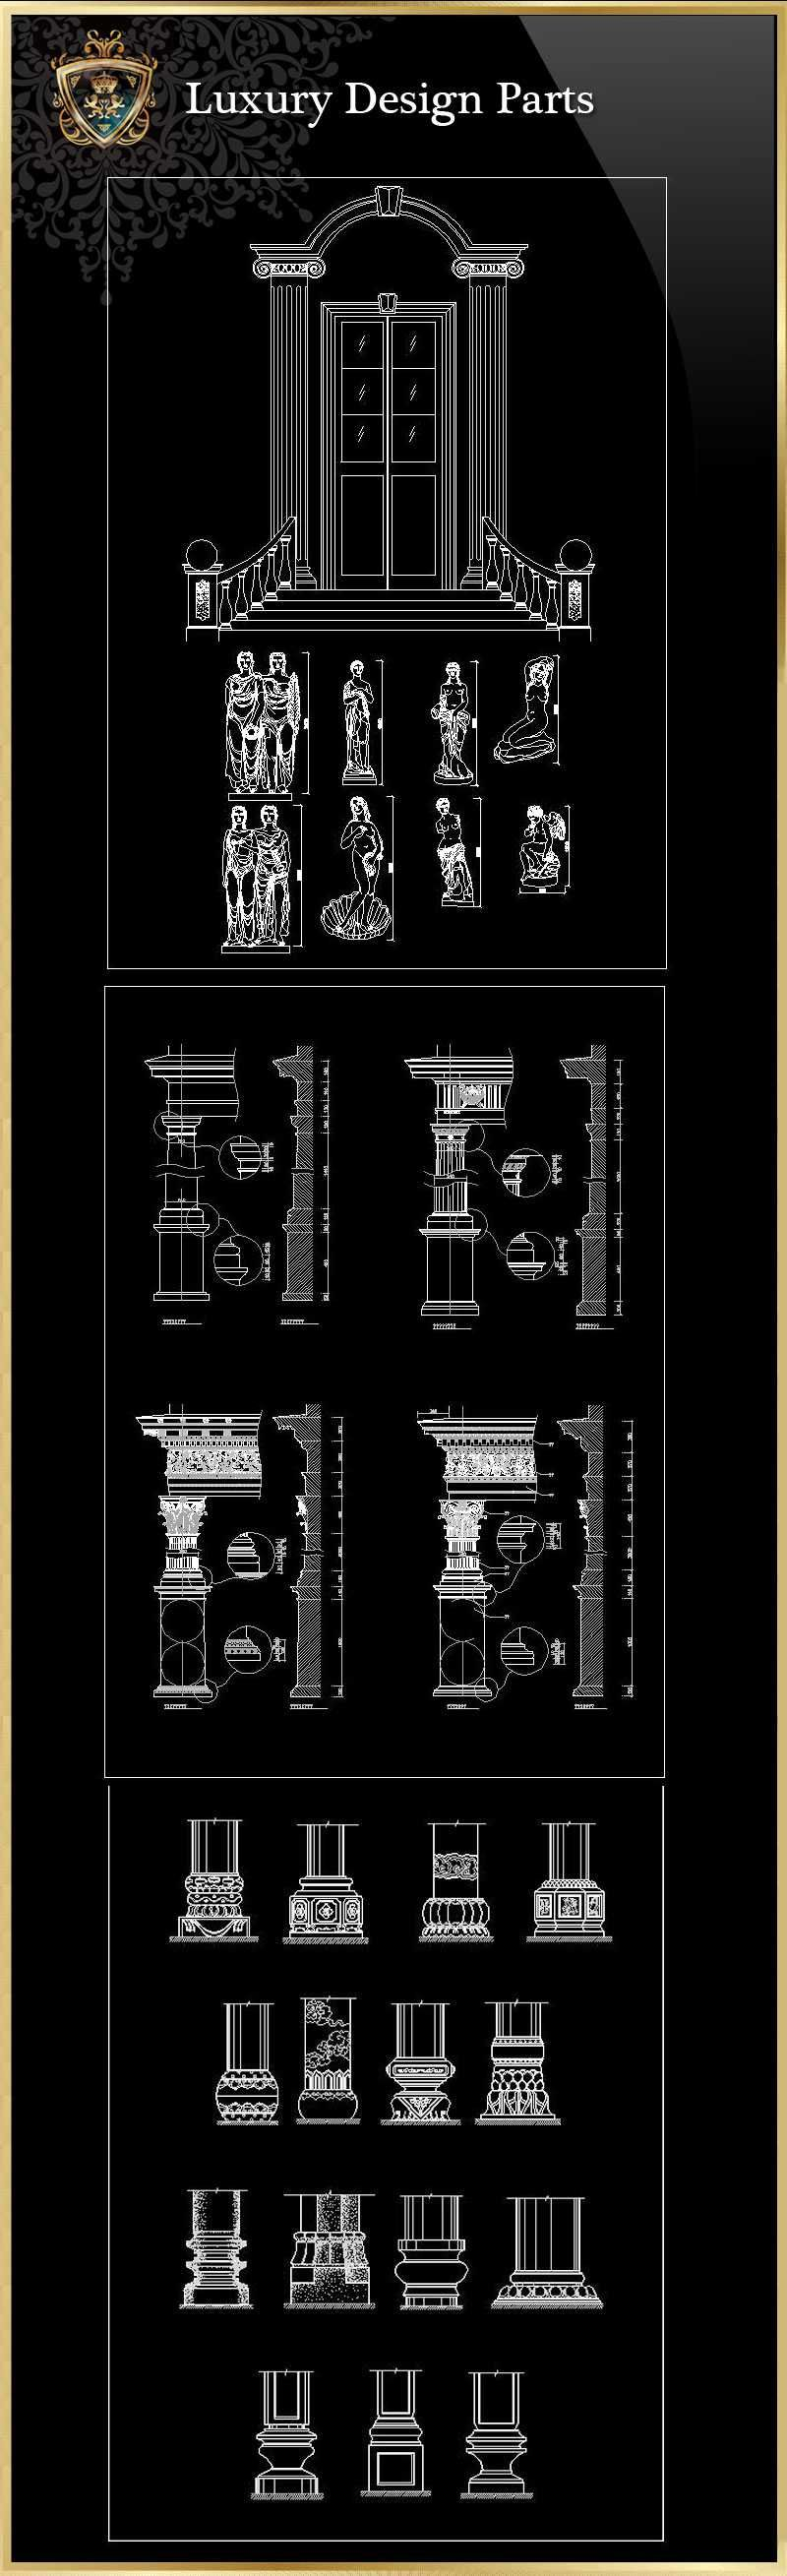 Pin on Download CAD Drawings AutoCAD Blocks